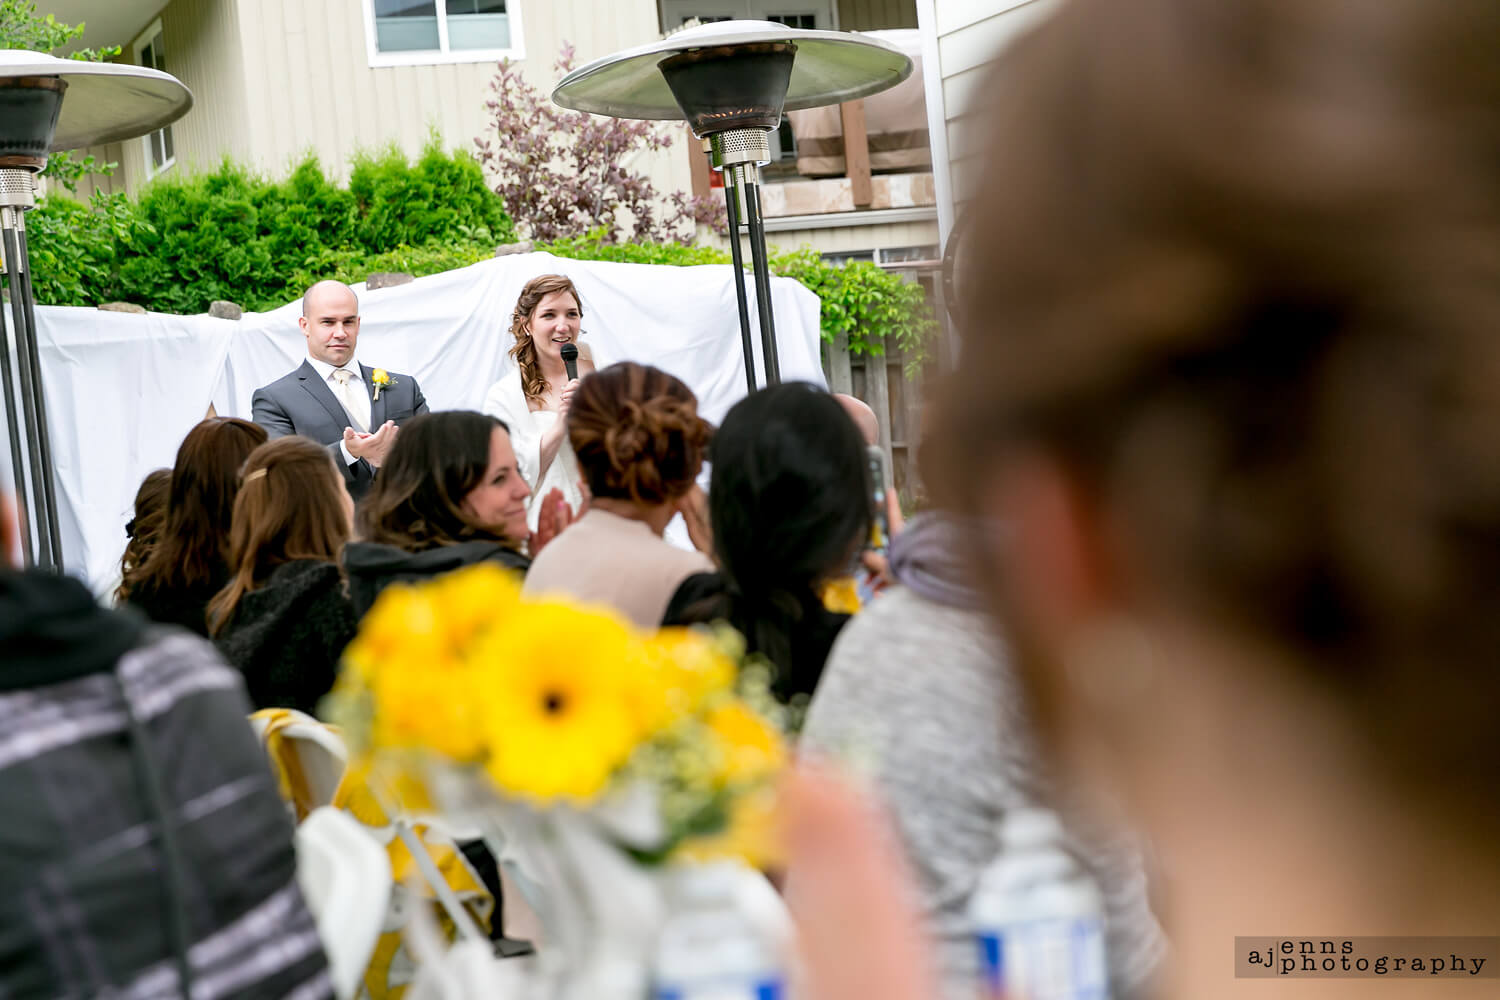 The bride and groom giving their thank you speeches